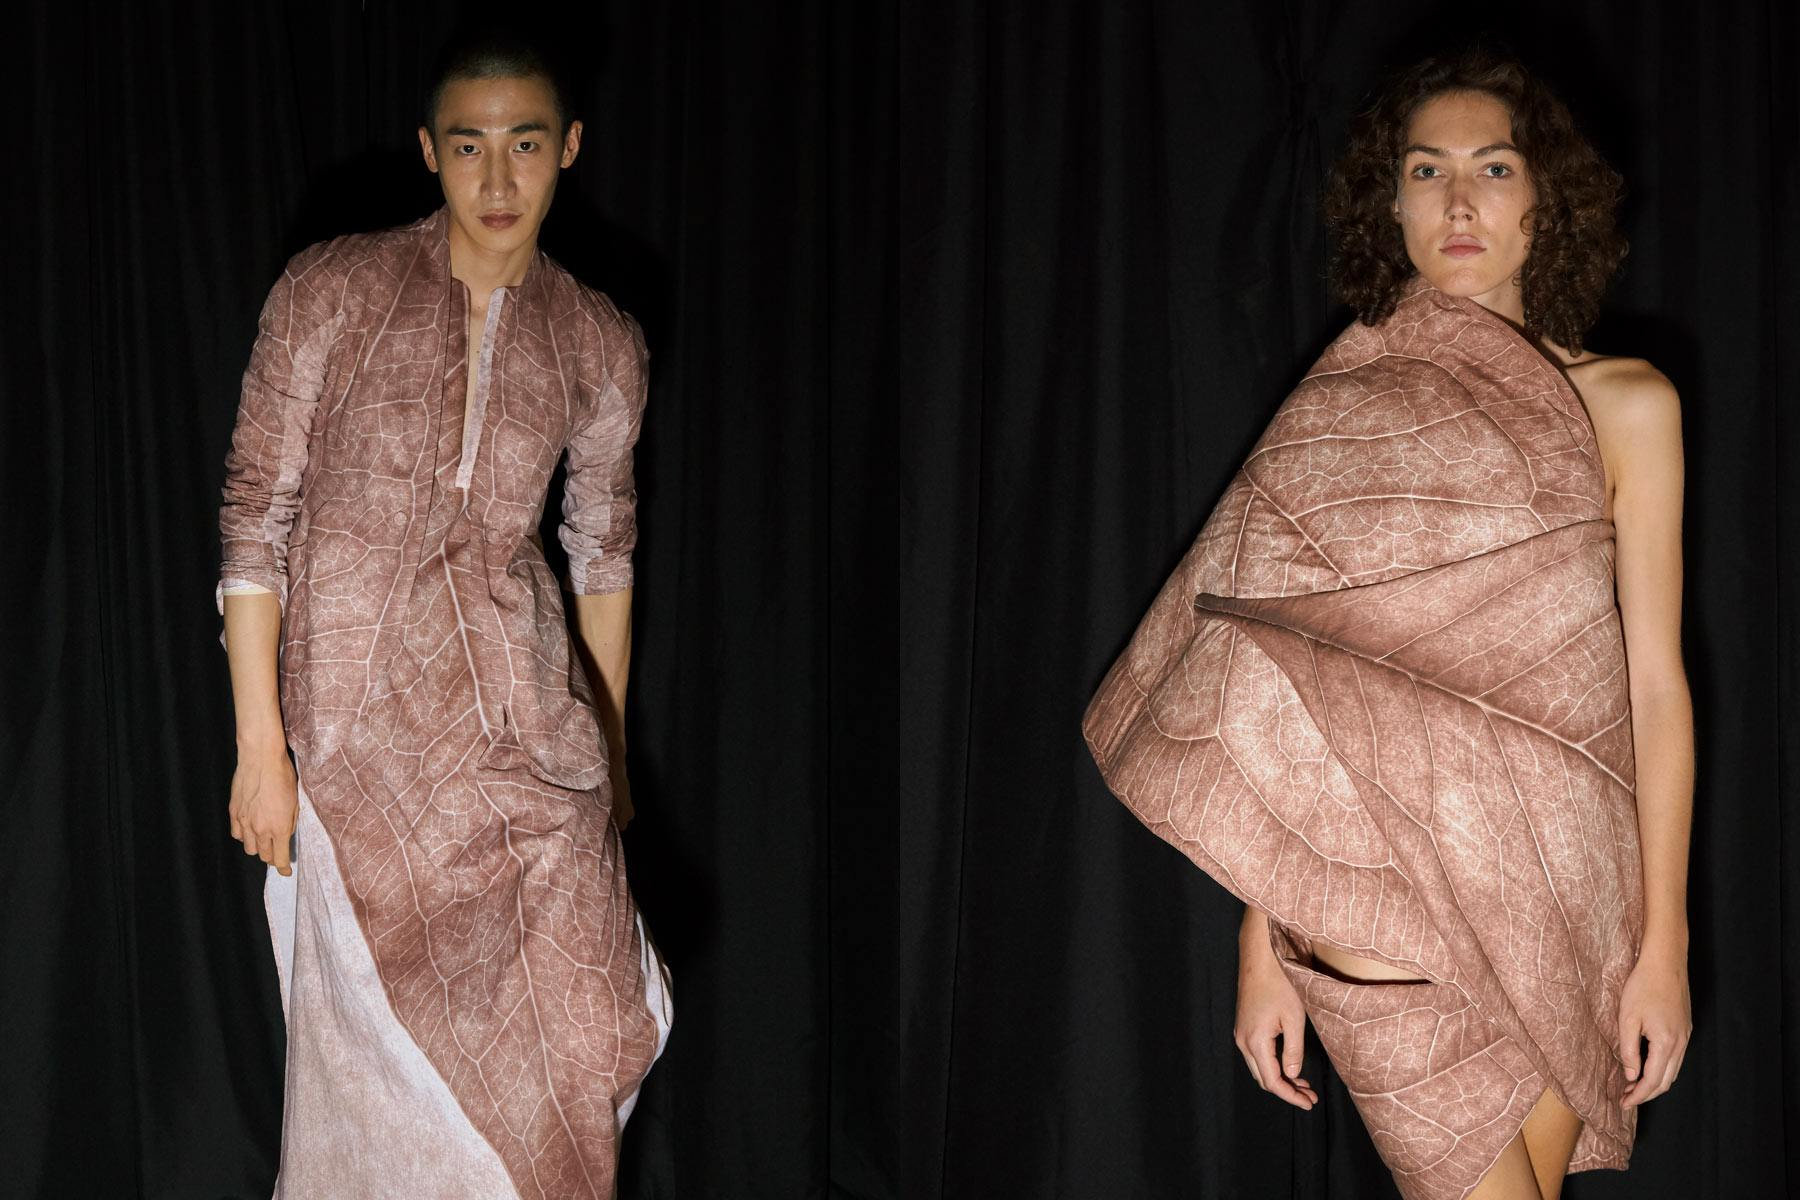 Models snapped backstage at the threeASFOUR Spring/Summer 2020 runway show in New York. Photographed by Alexander Thompson for Ponyboy magazine.